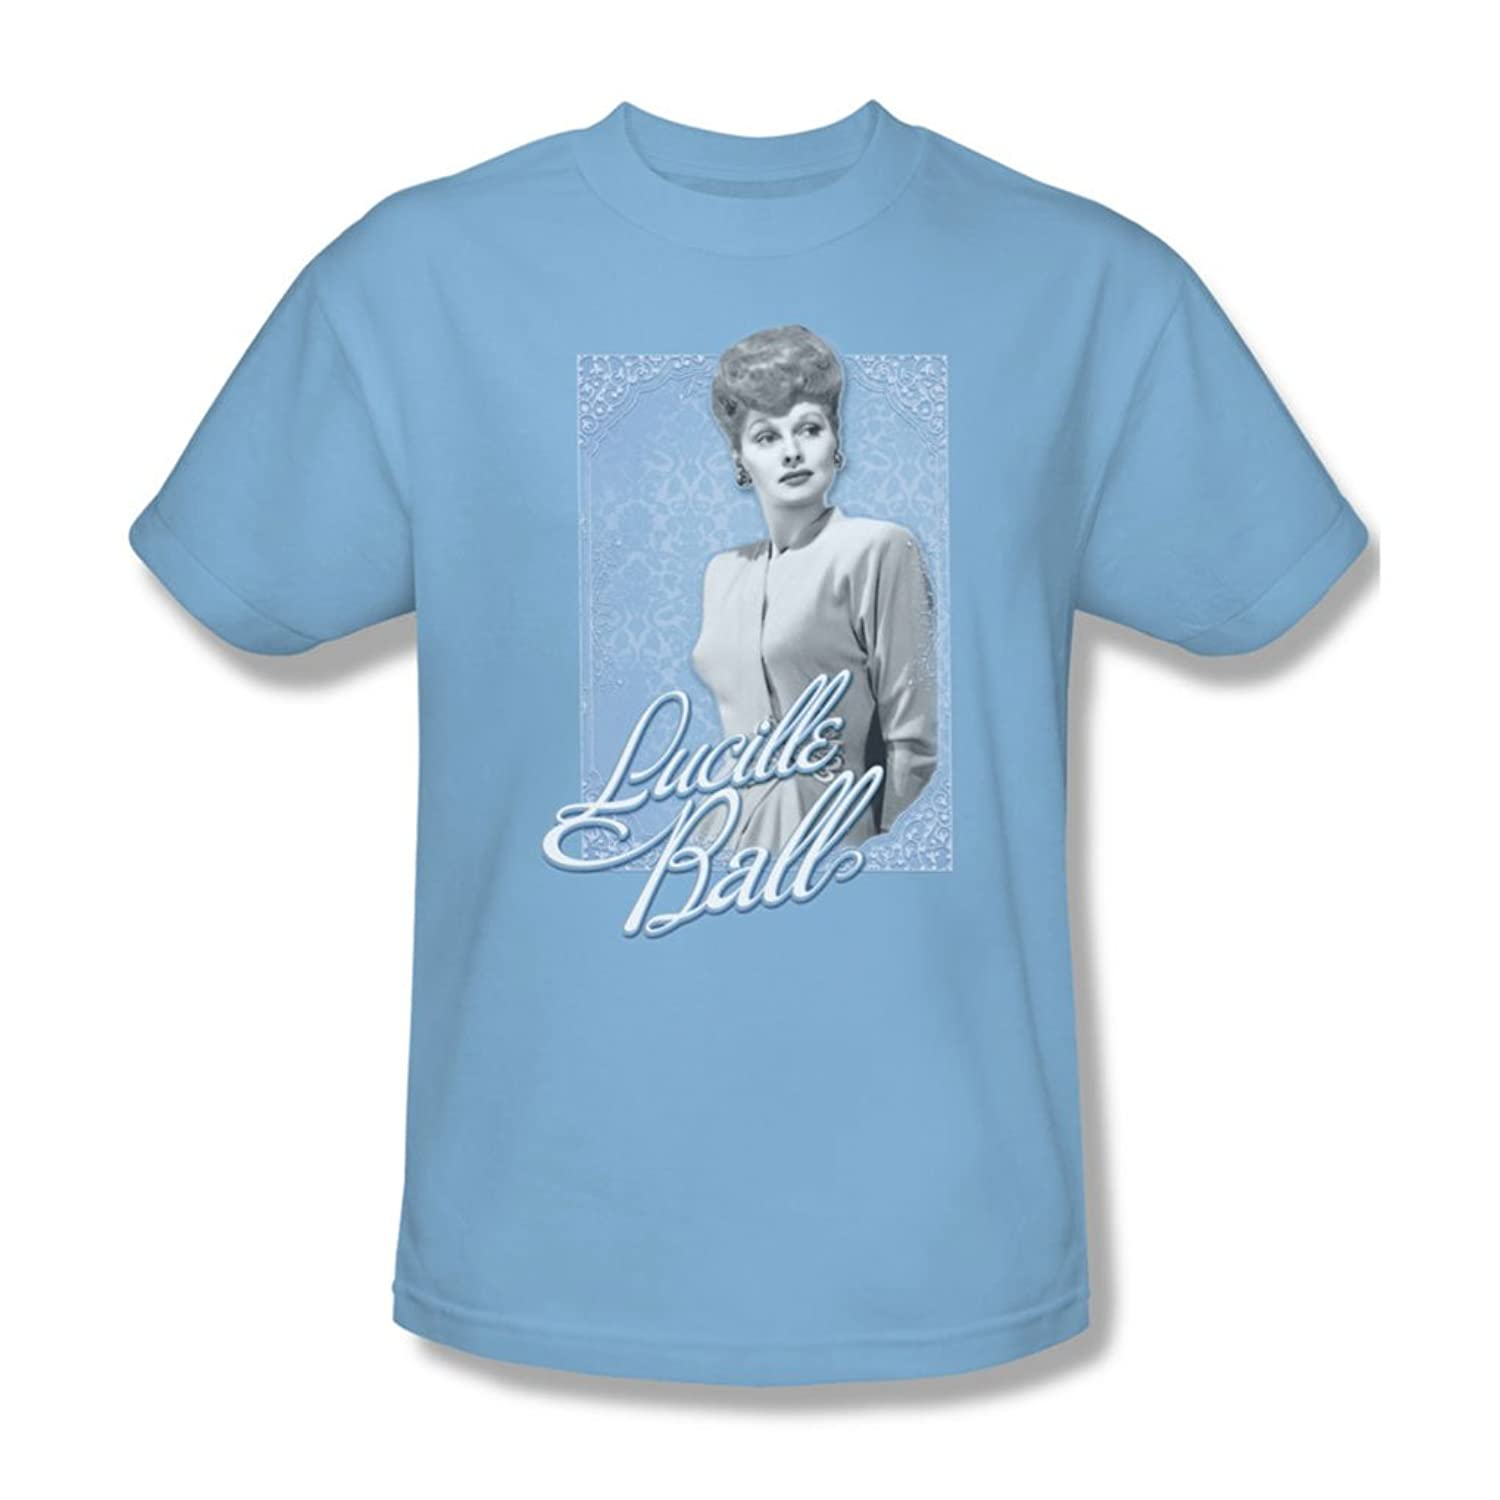 I Love Lucy - Mens Blue Lace T-Shirt In Light Blue